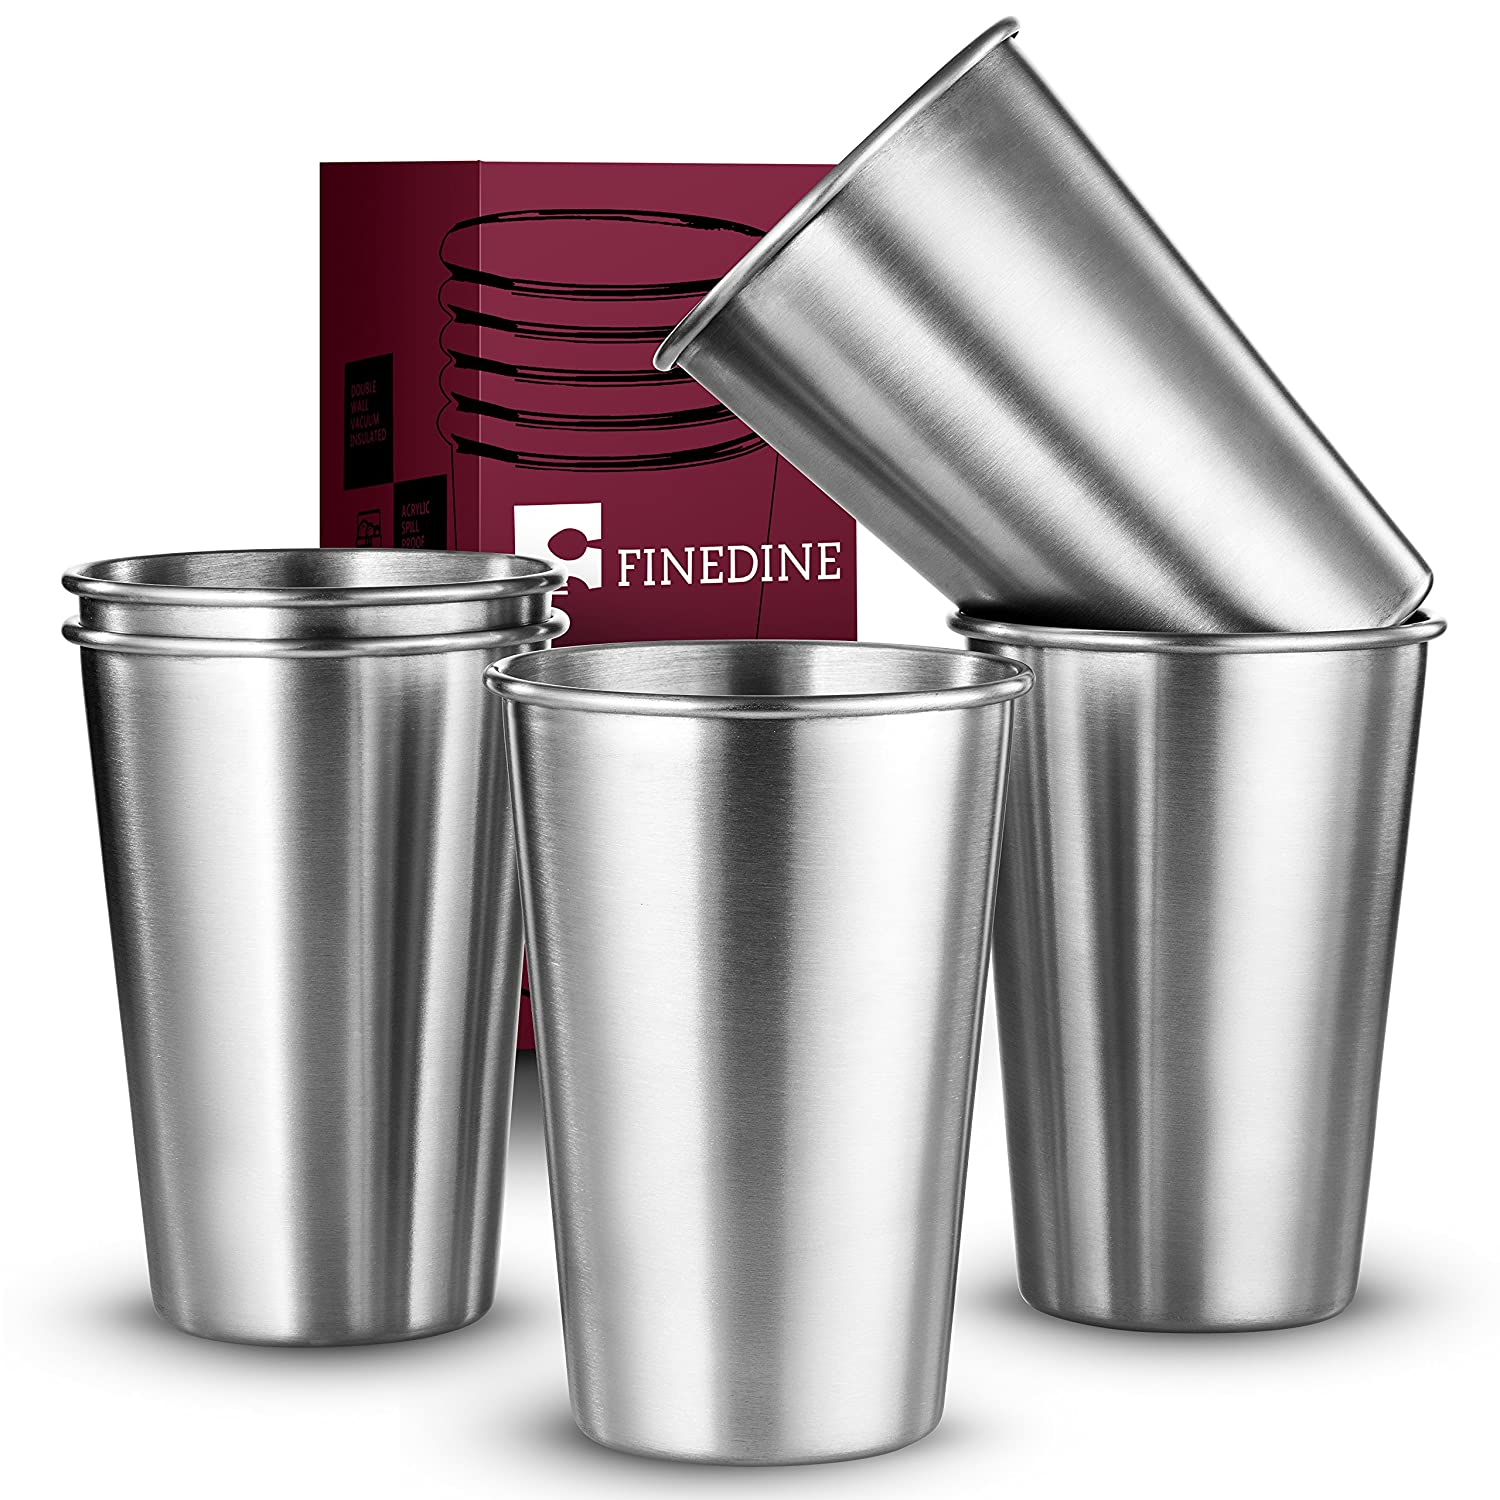 FINEDINE Premium Grade Stainless Steel Pint Cups Water Tumblers (5 Piece) Unbreakable, Stackable, Brushed Metal Drinking Glasses, Chilling Beer Glasses, for Travel, Outdoor, Camping, Everyday, 16 Oz FD-S901